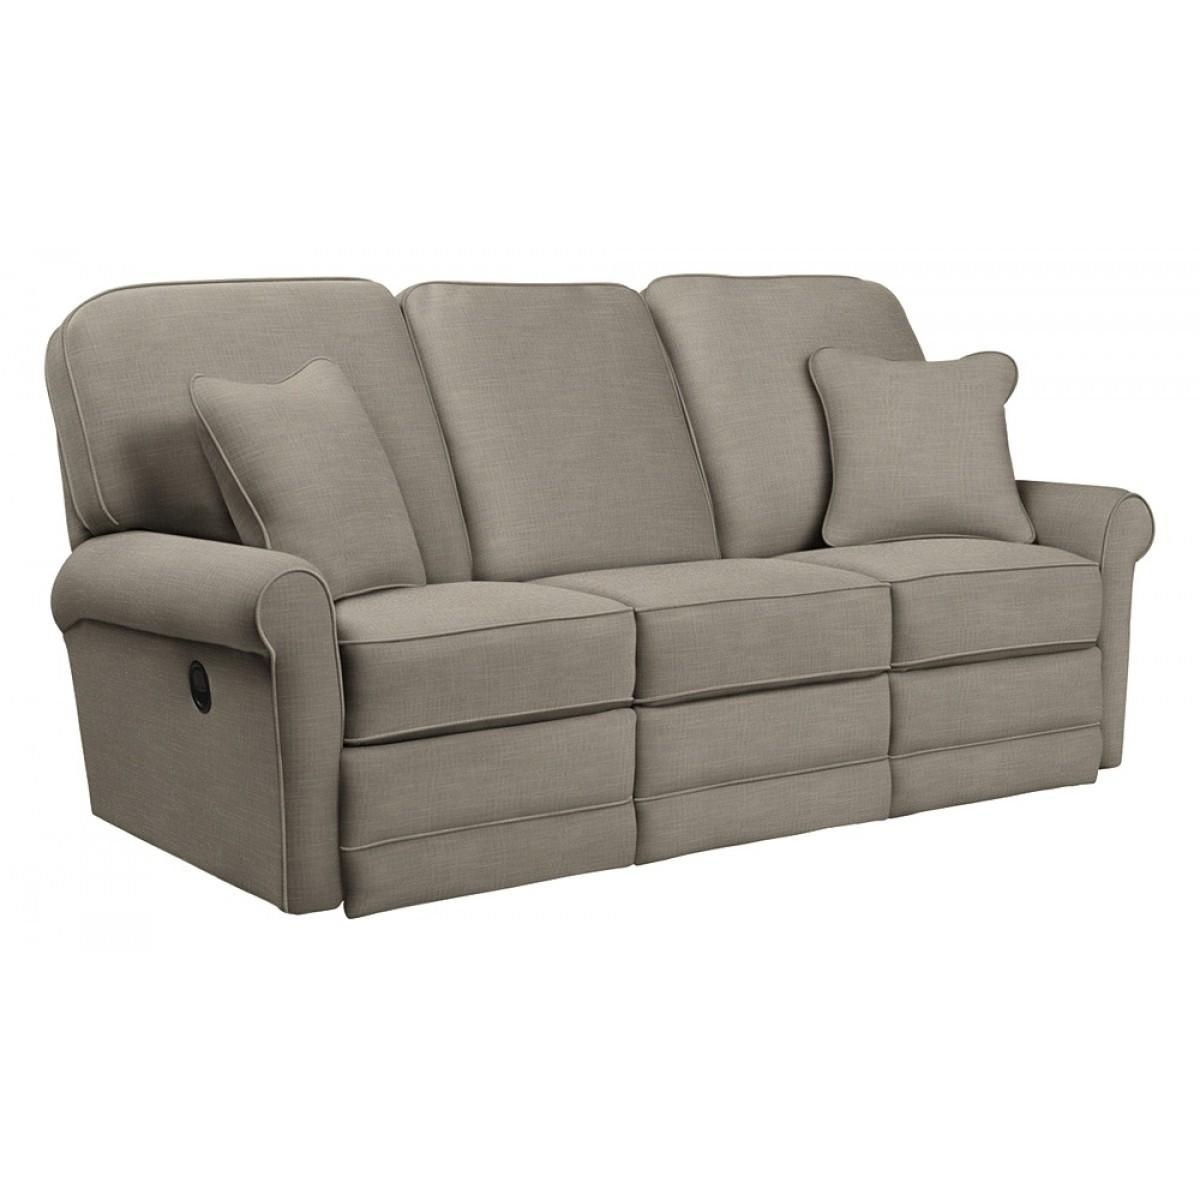 Z Boy Addison La Z Time® Full Reclining Sofa For Lazy Boy Sofas (Photo 14 of 20)